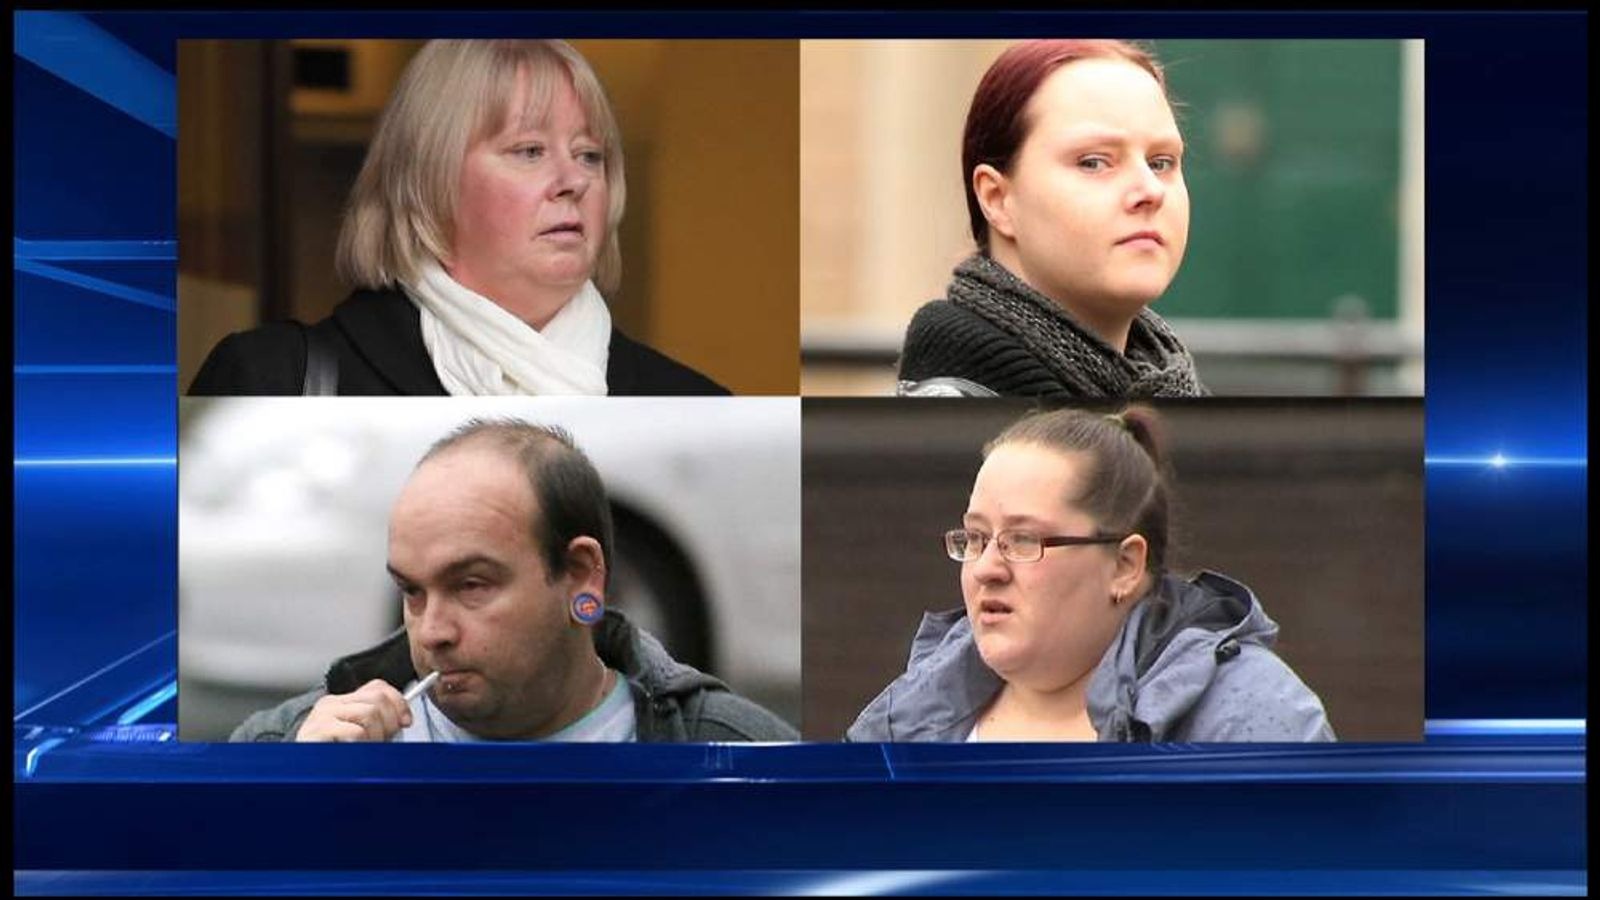 Care workers sentenced